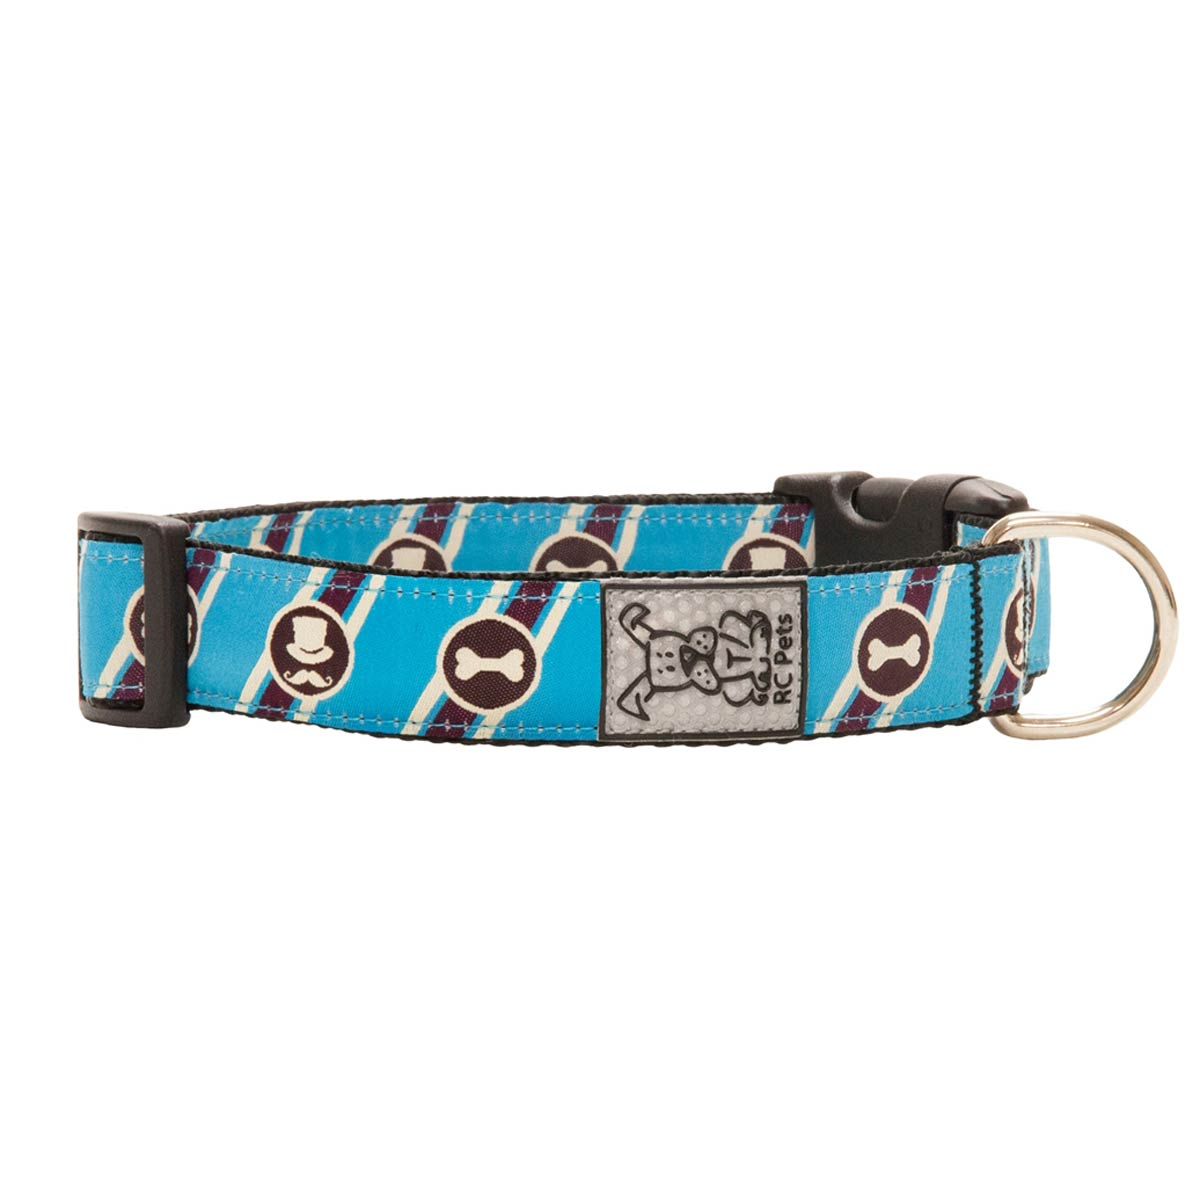 Muttropolitan Adjustable Clip Dog Collar by RC Pet - Blue